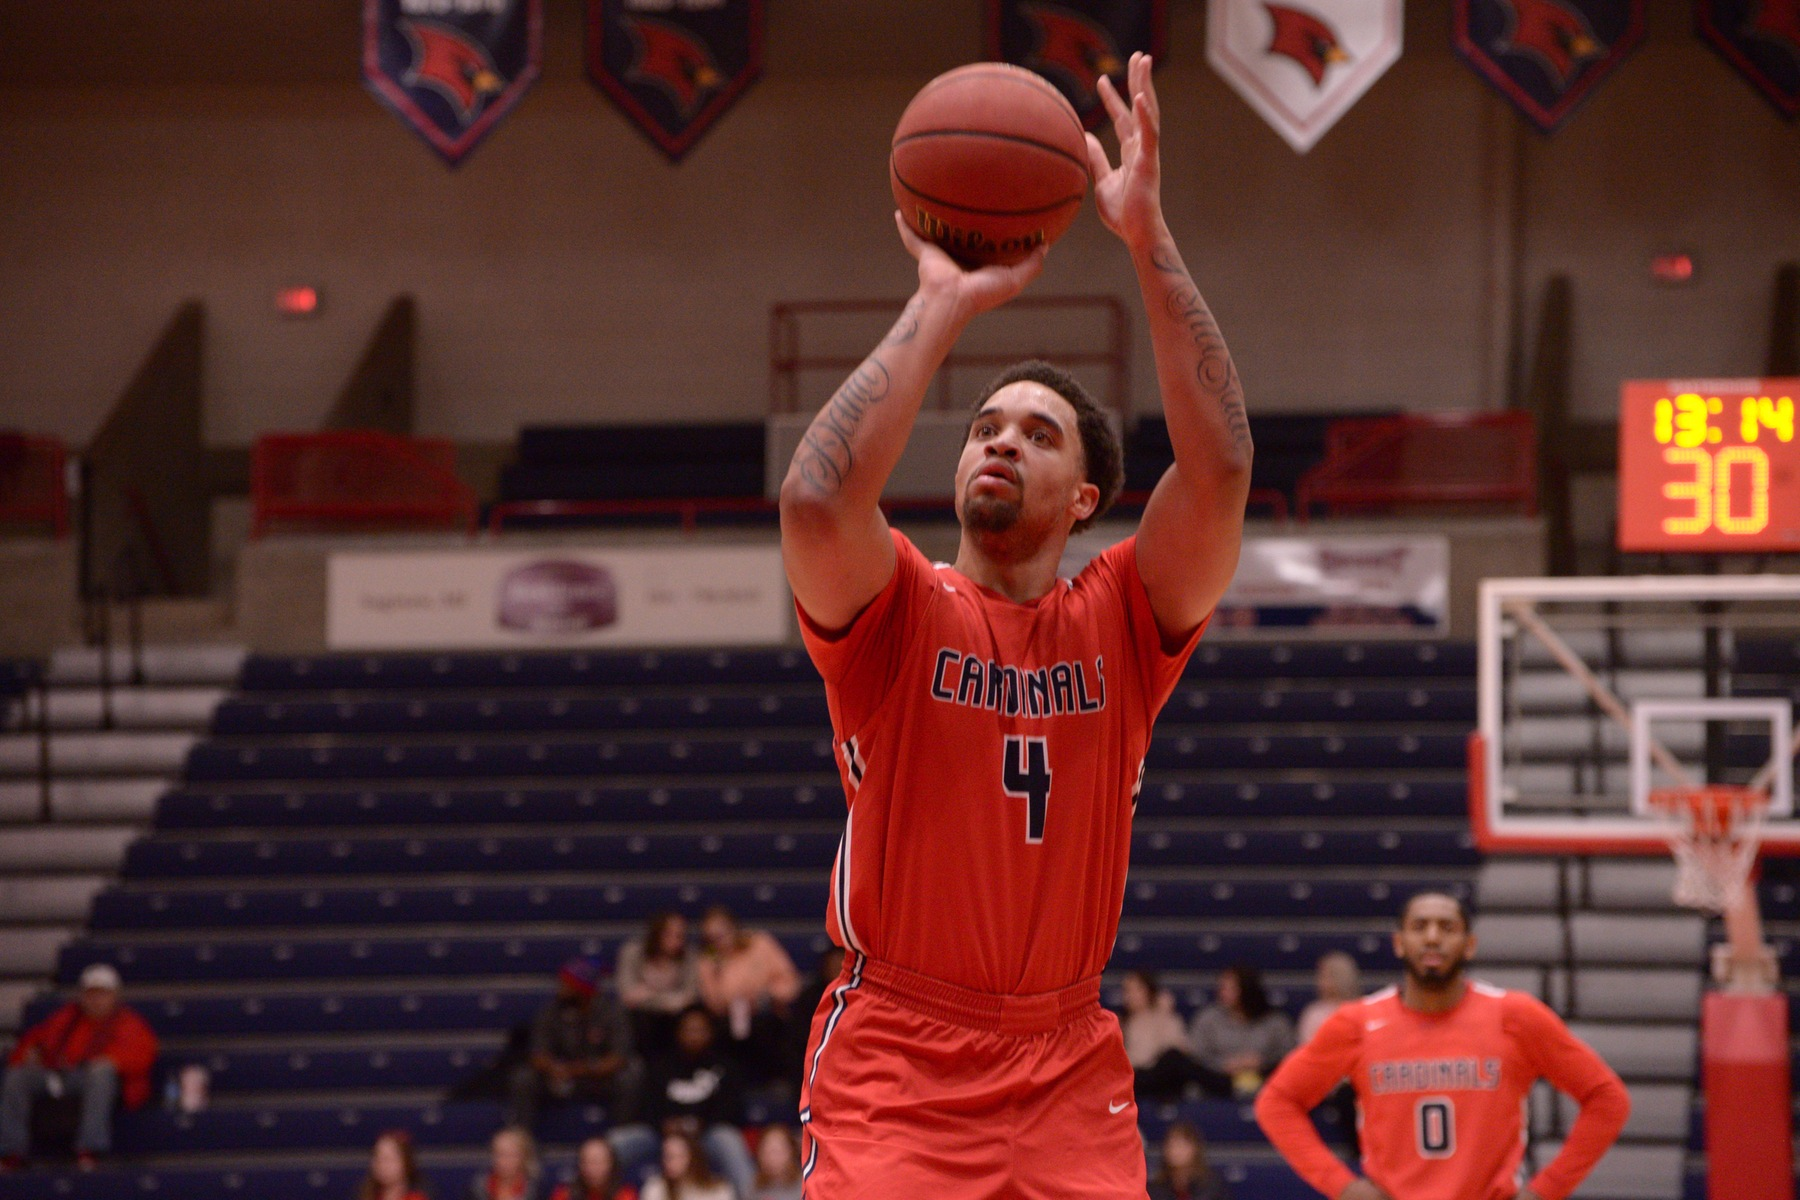 Cardinals not enough for Lakers in second half; fall 81-64 in GLIAC matchup